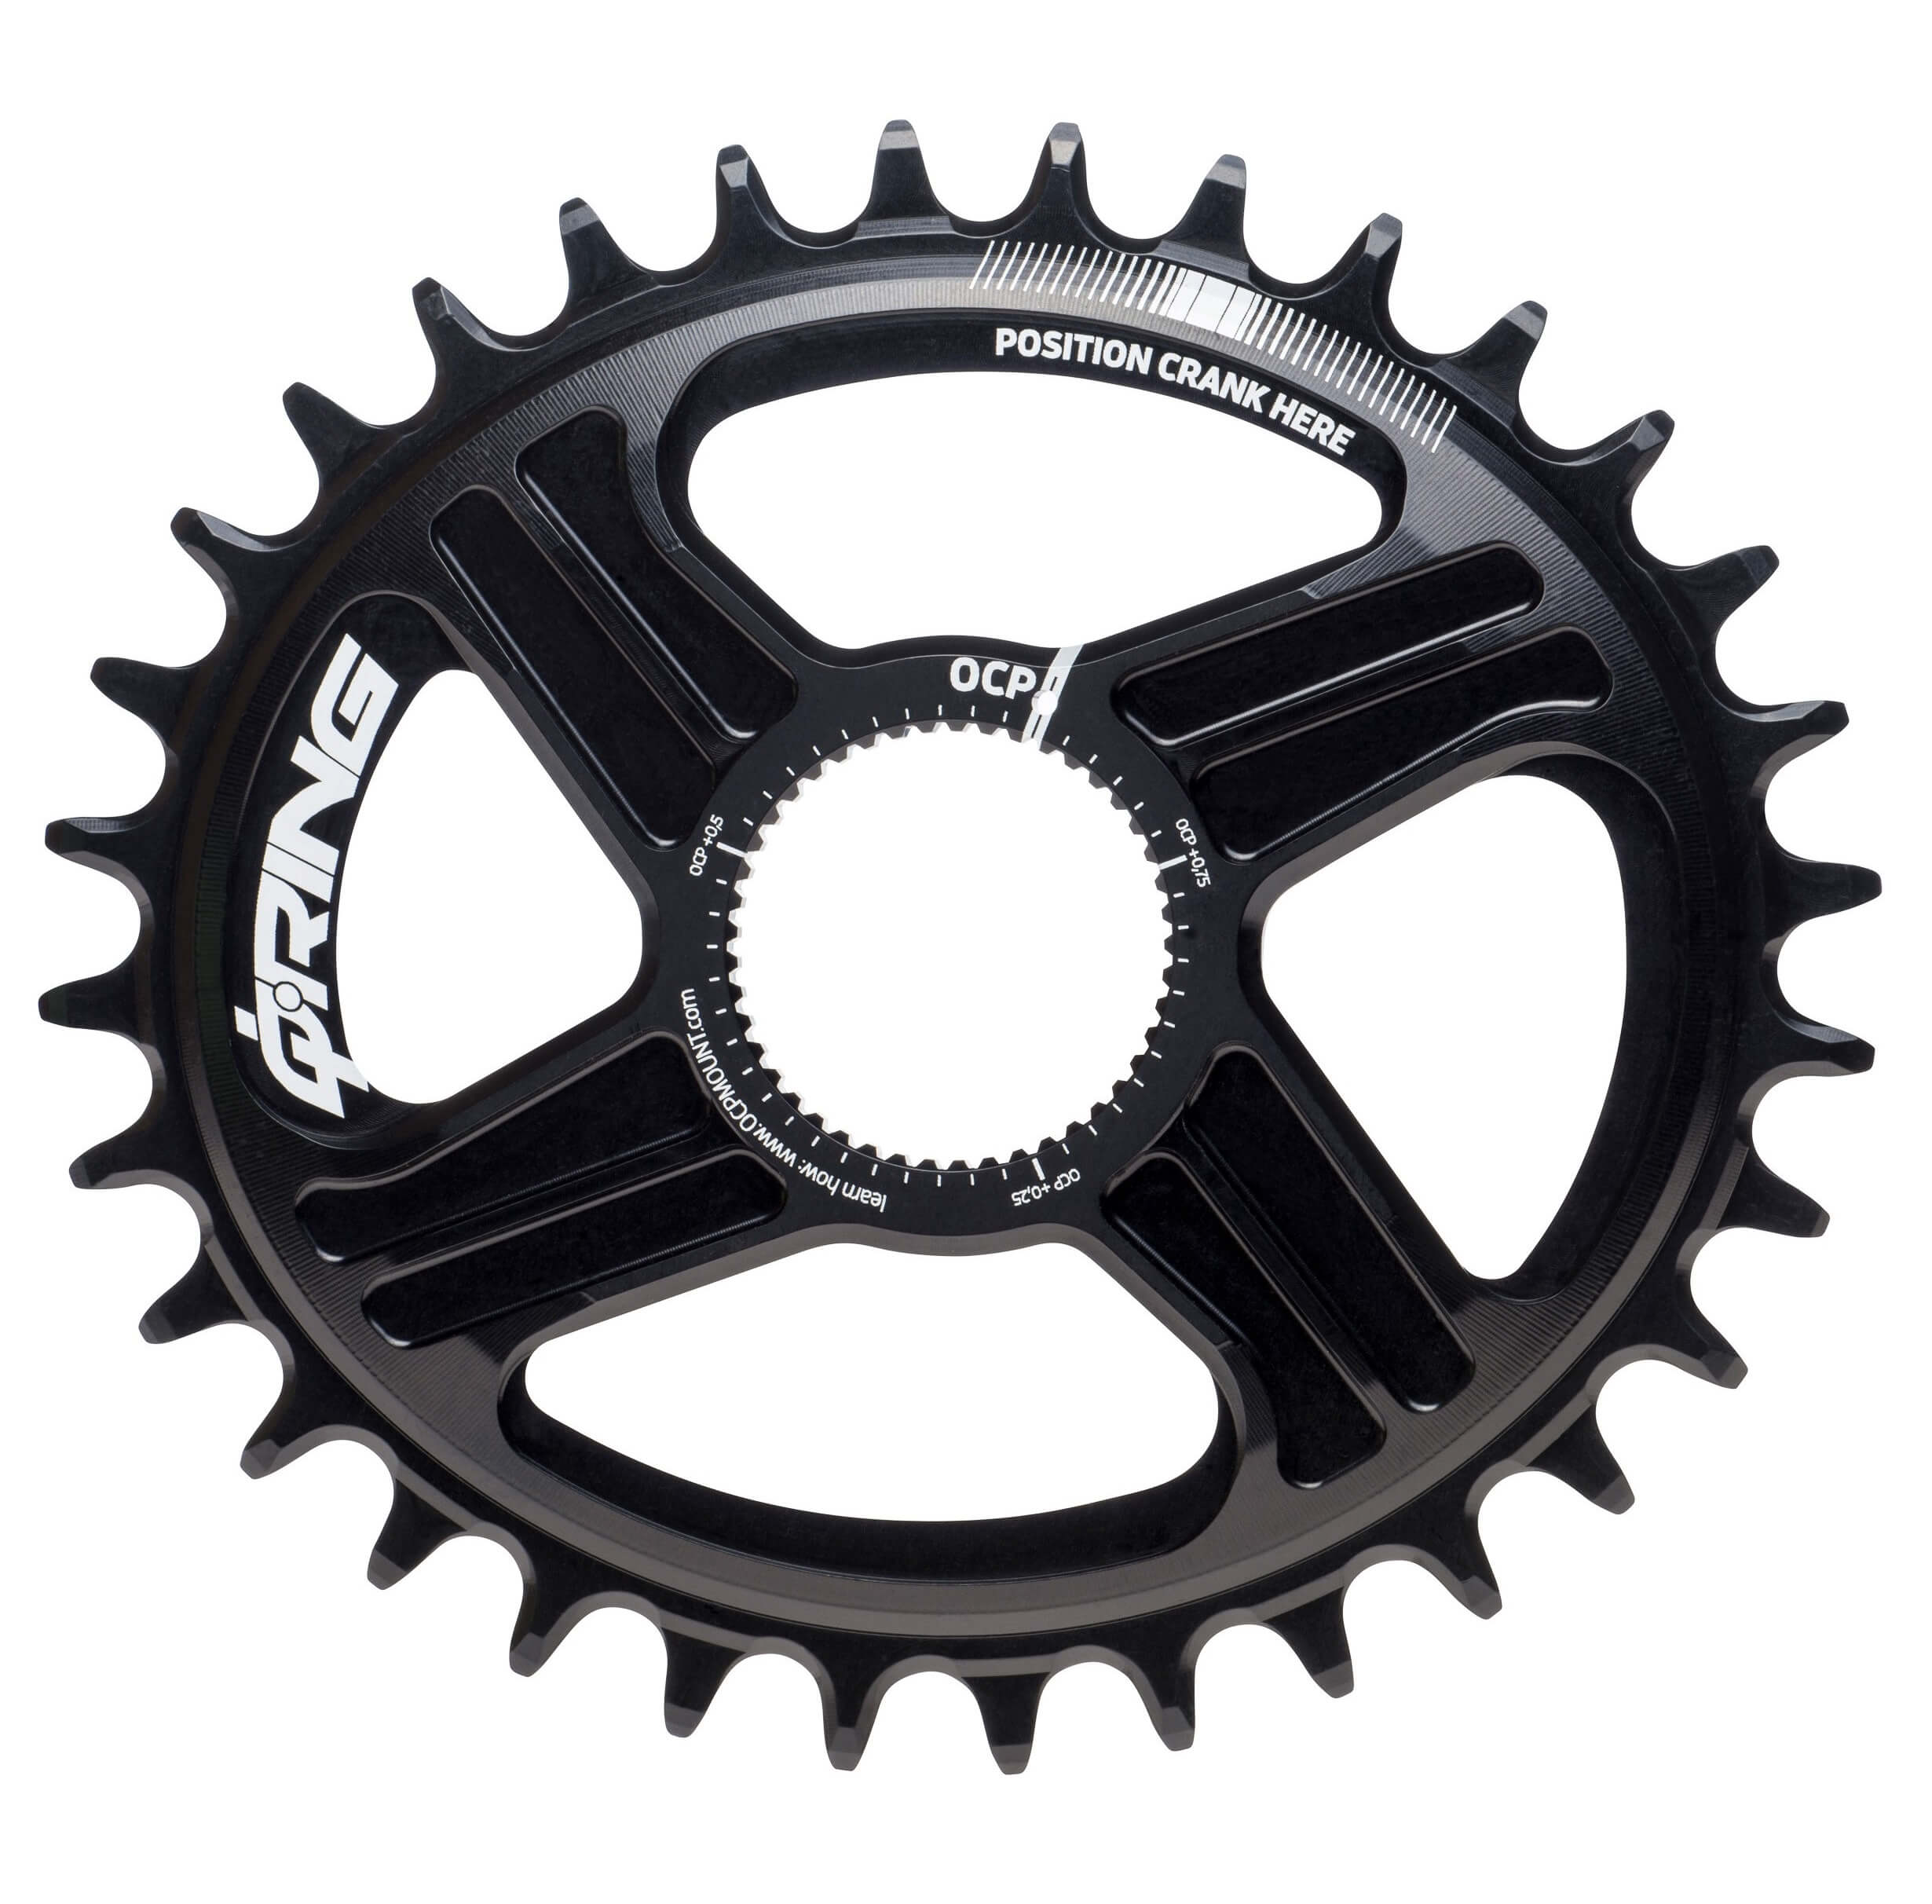 ROTOR DM QRINGS OVAL CHAINRING SRAM BB30 DIRECT MOUNT SINGLE